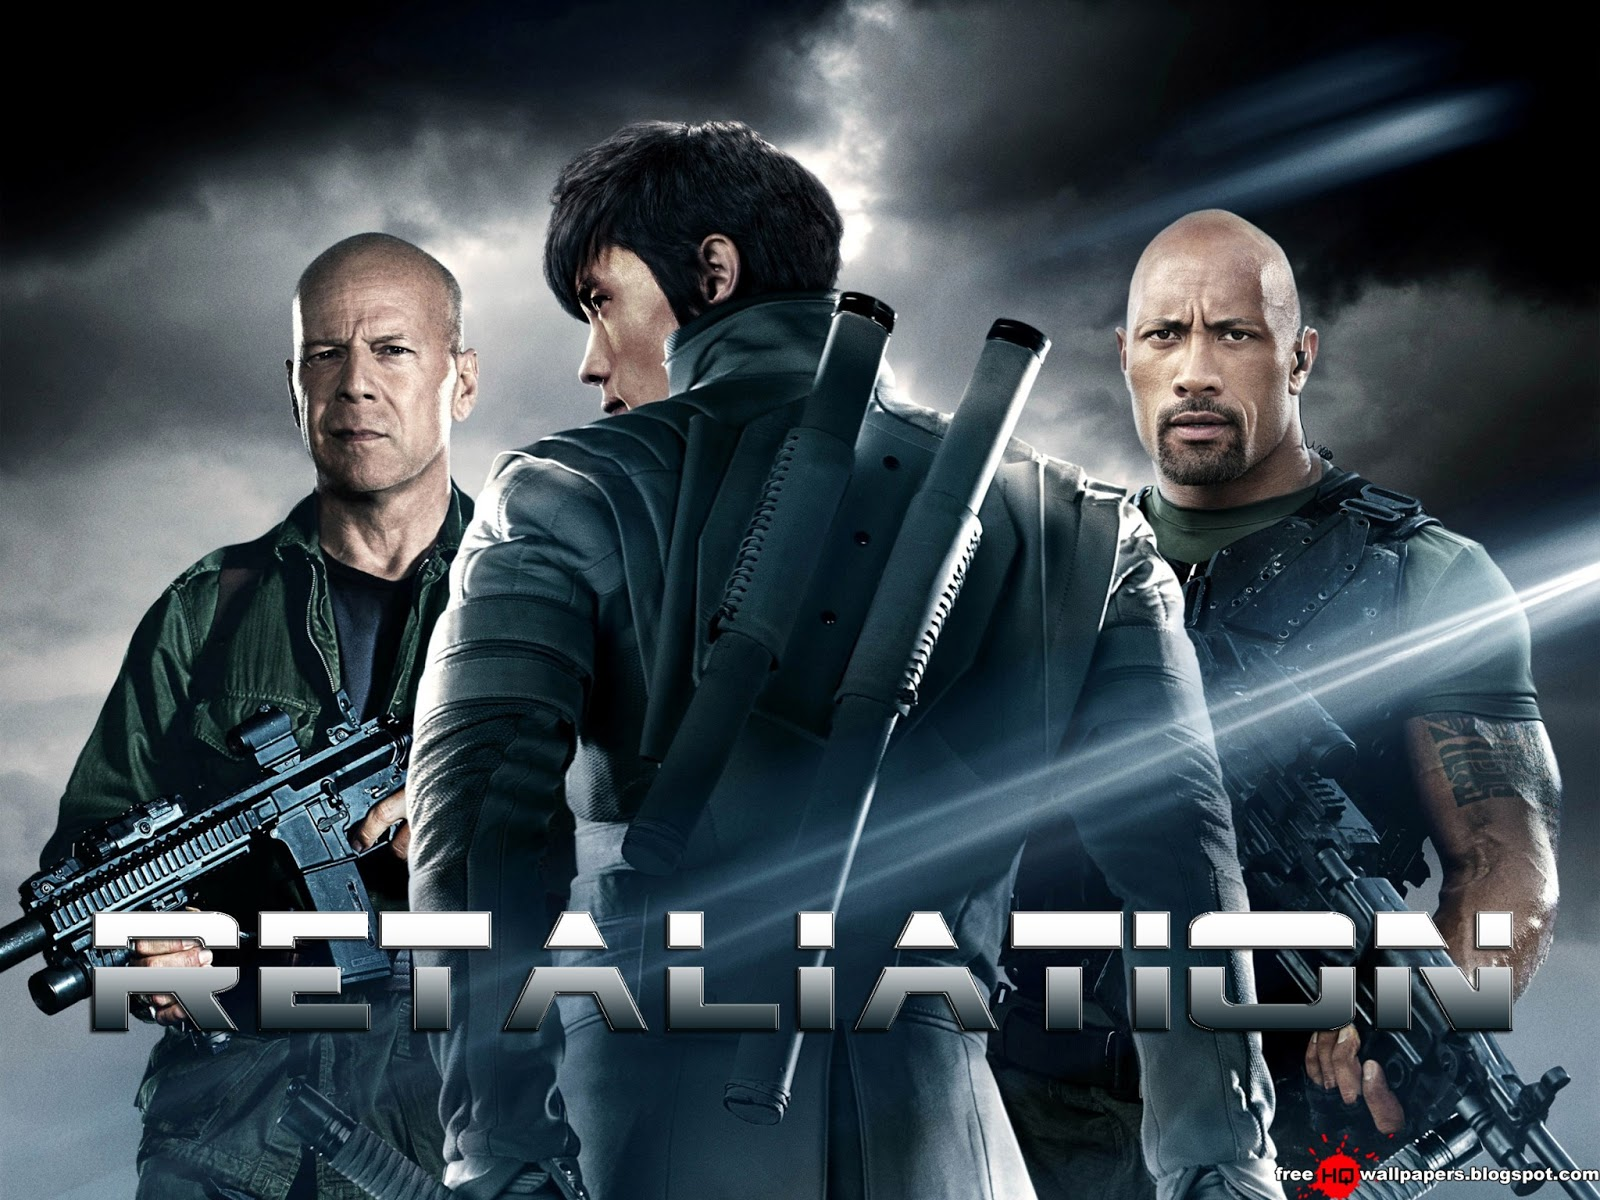 G.I. Joe Retaliation Movie Wallpaper #2 SantaBanta - g i  joe retaliation wallpapers